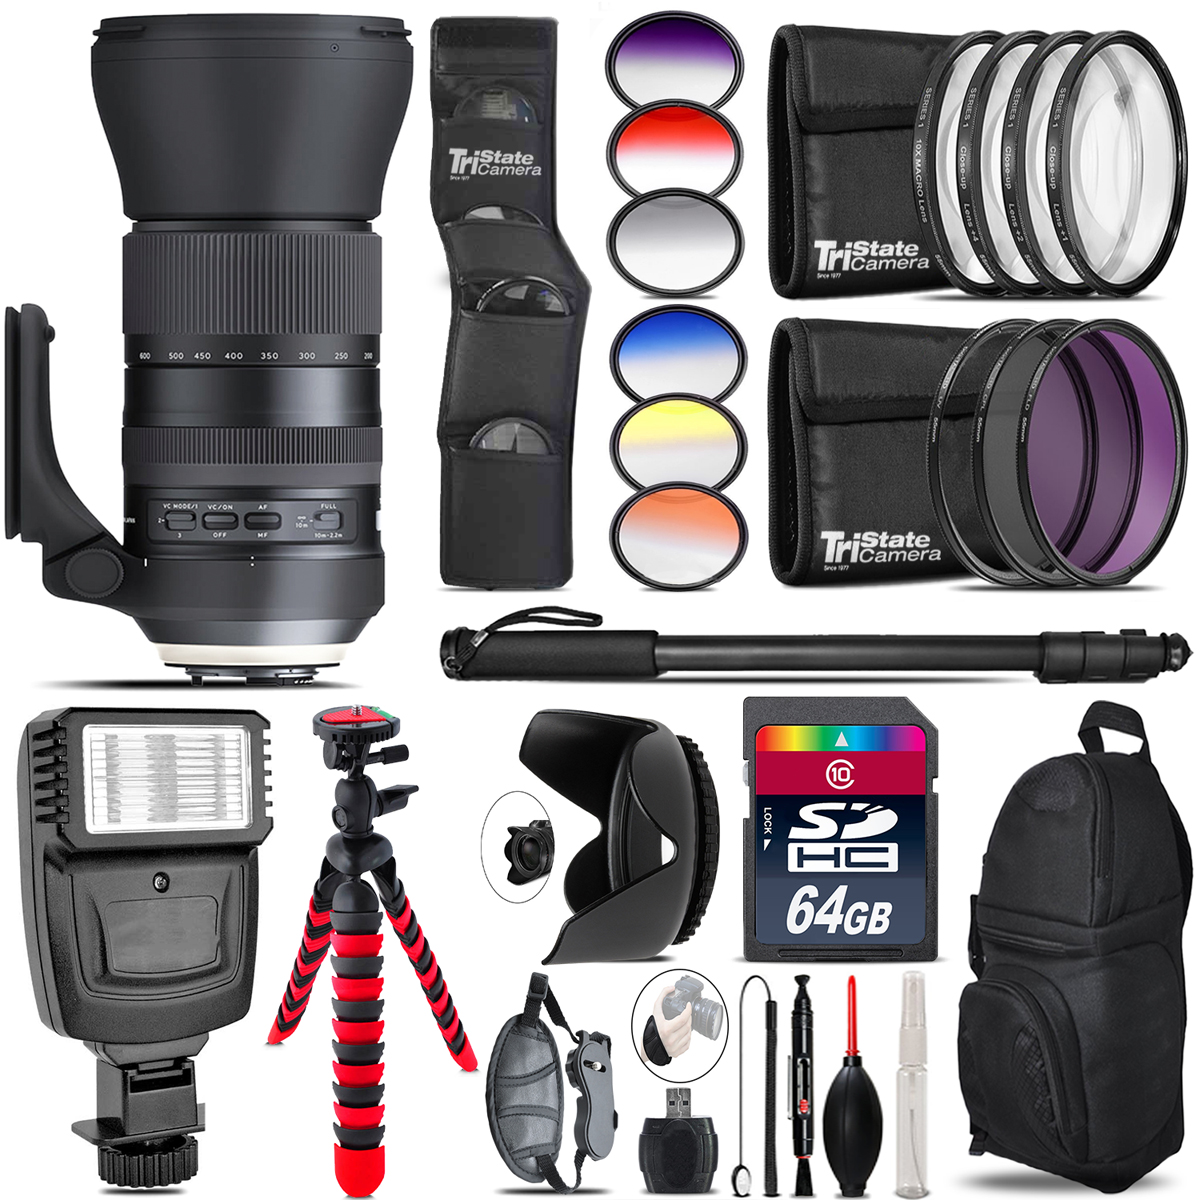 Tamron 150-600mm G2 for Canon + Flash + Color Filter Set - 64GB Accessory Kit *FREE SHIPPING*